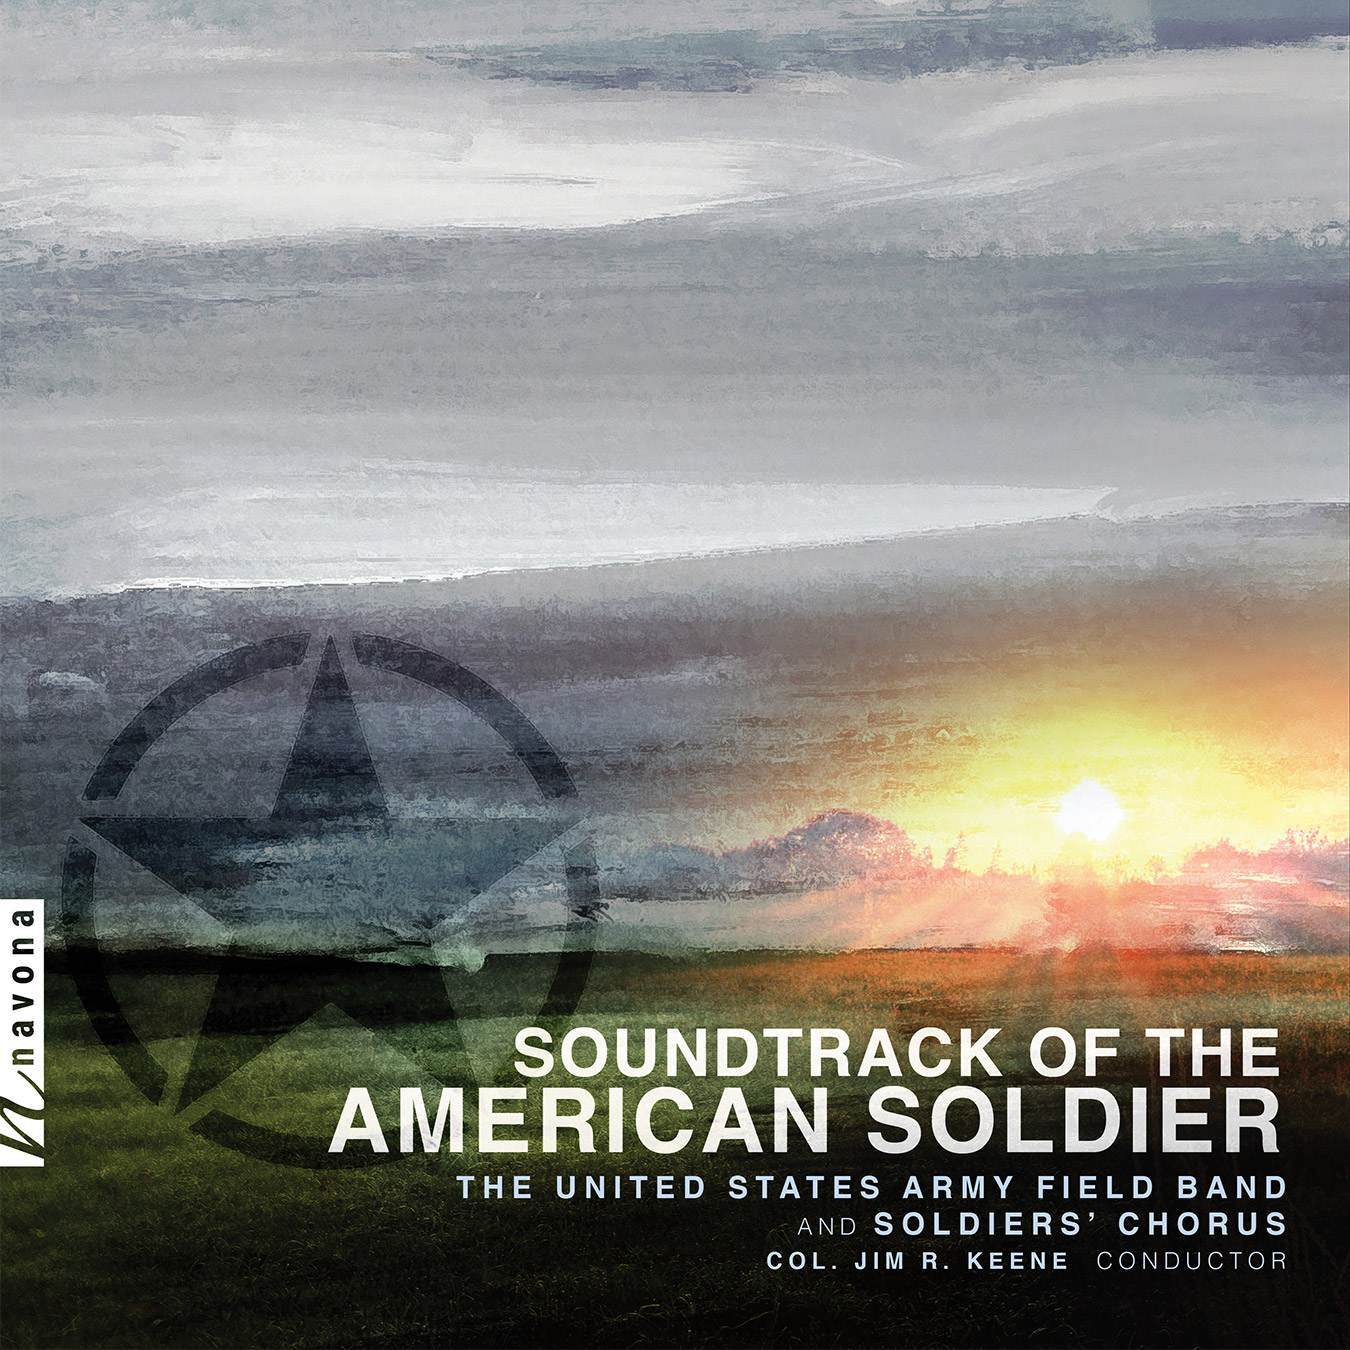 Soundtrack of the American Soldier -The United States Army Field Band - Album Cover